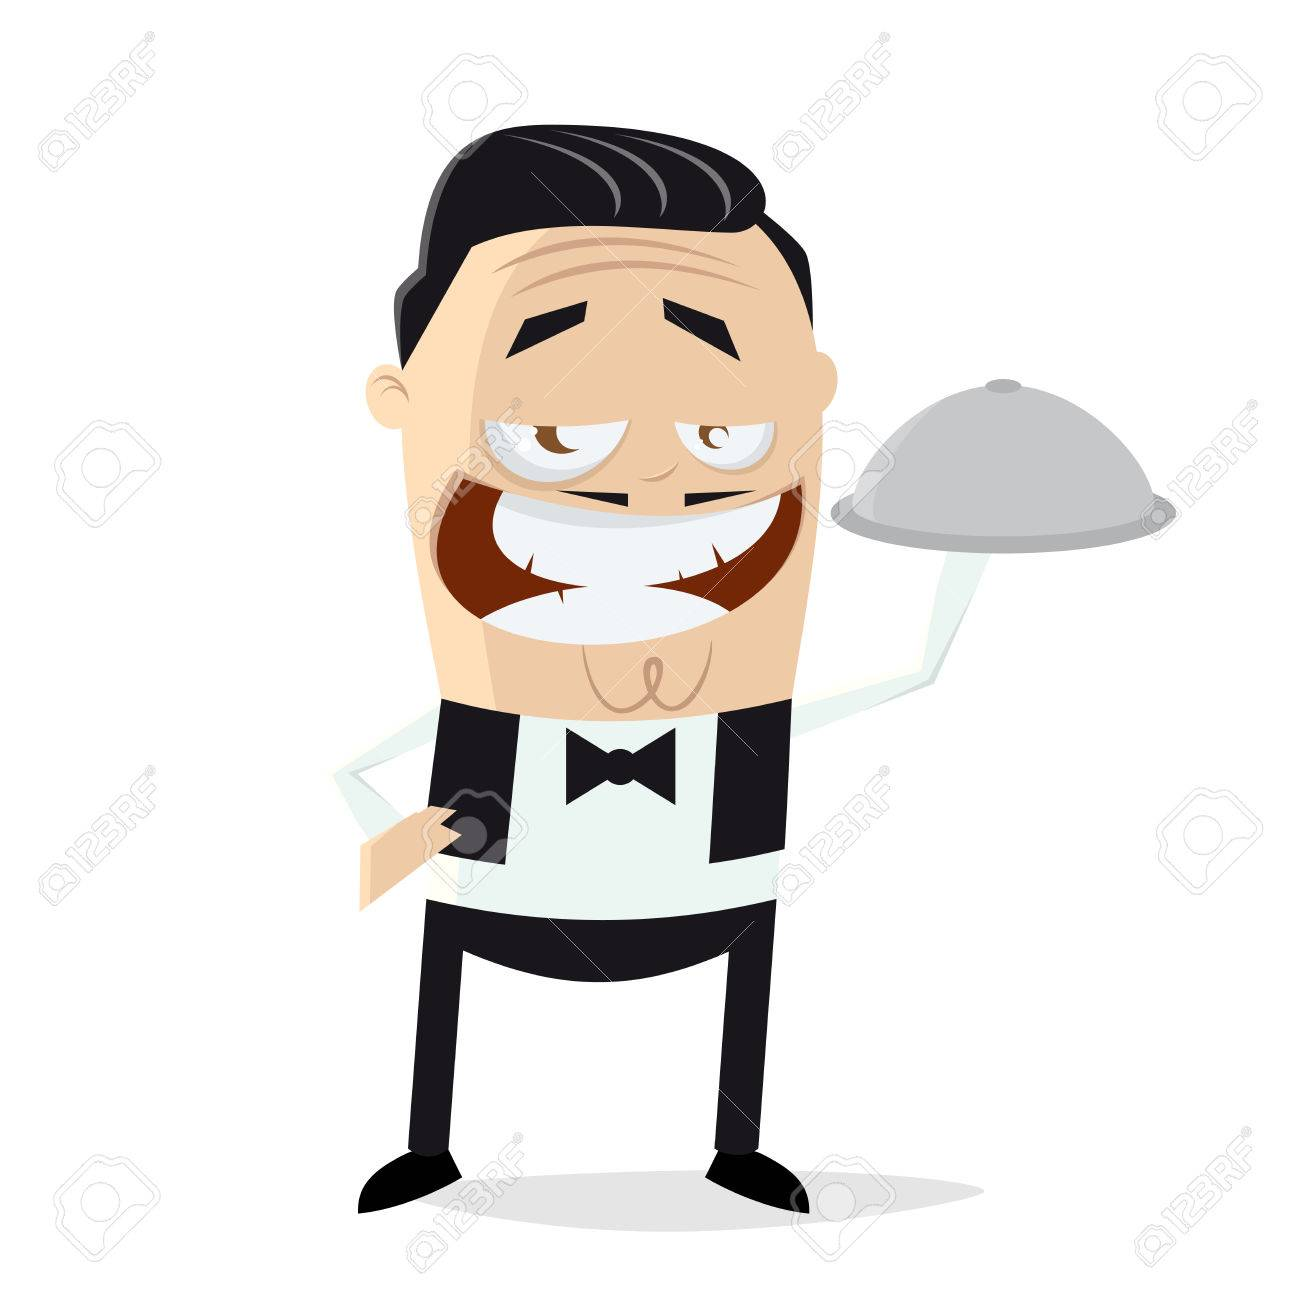 Funny cartoon waiter clipart..